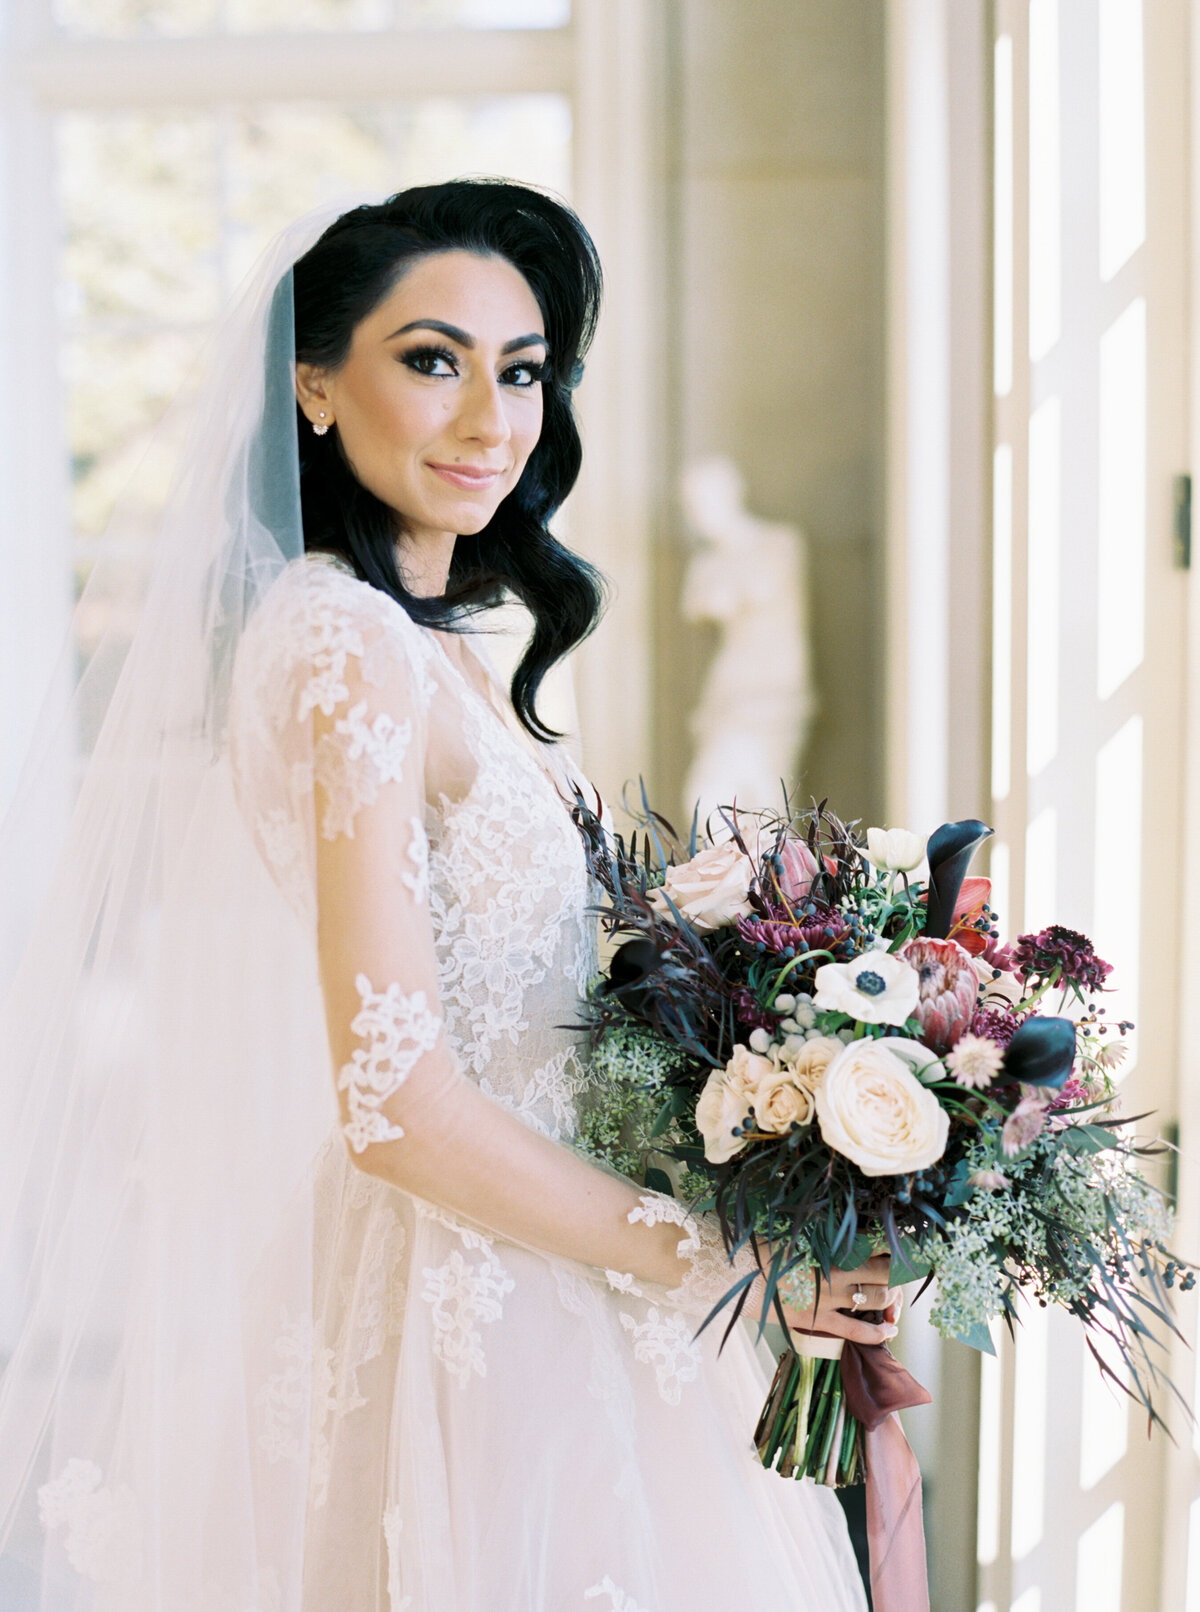 Kaylea Moreno_wedding gallery - Rami-Cassandra-Wedding-krmorenophoto-49